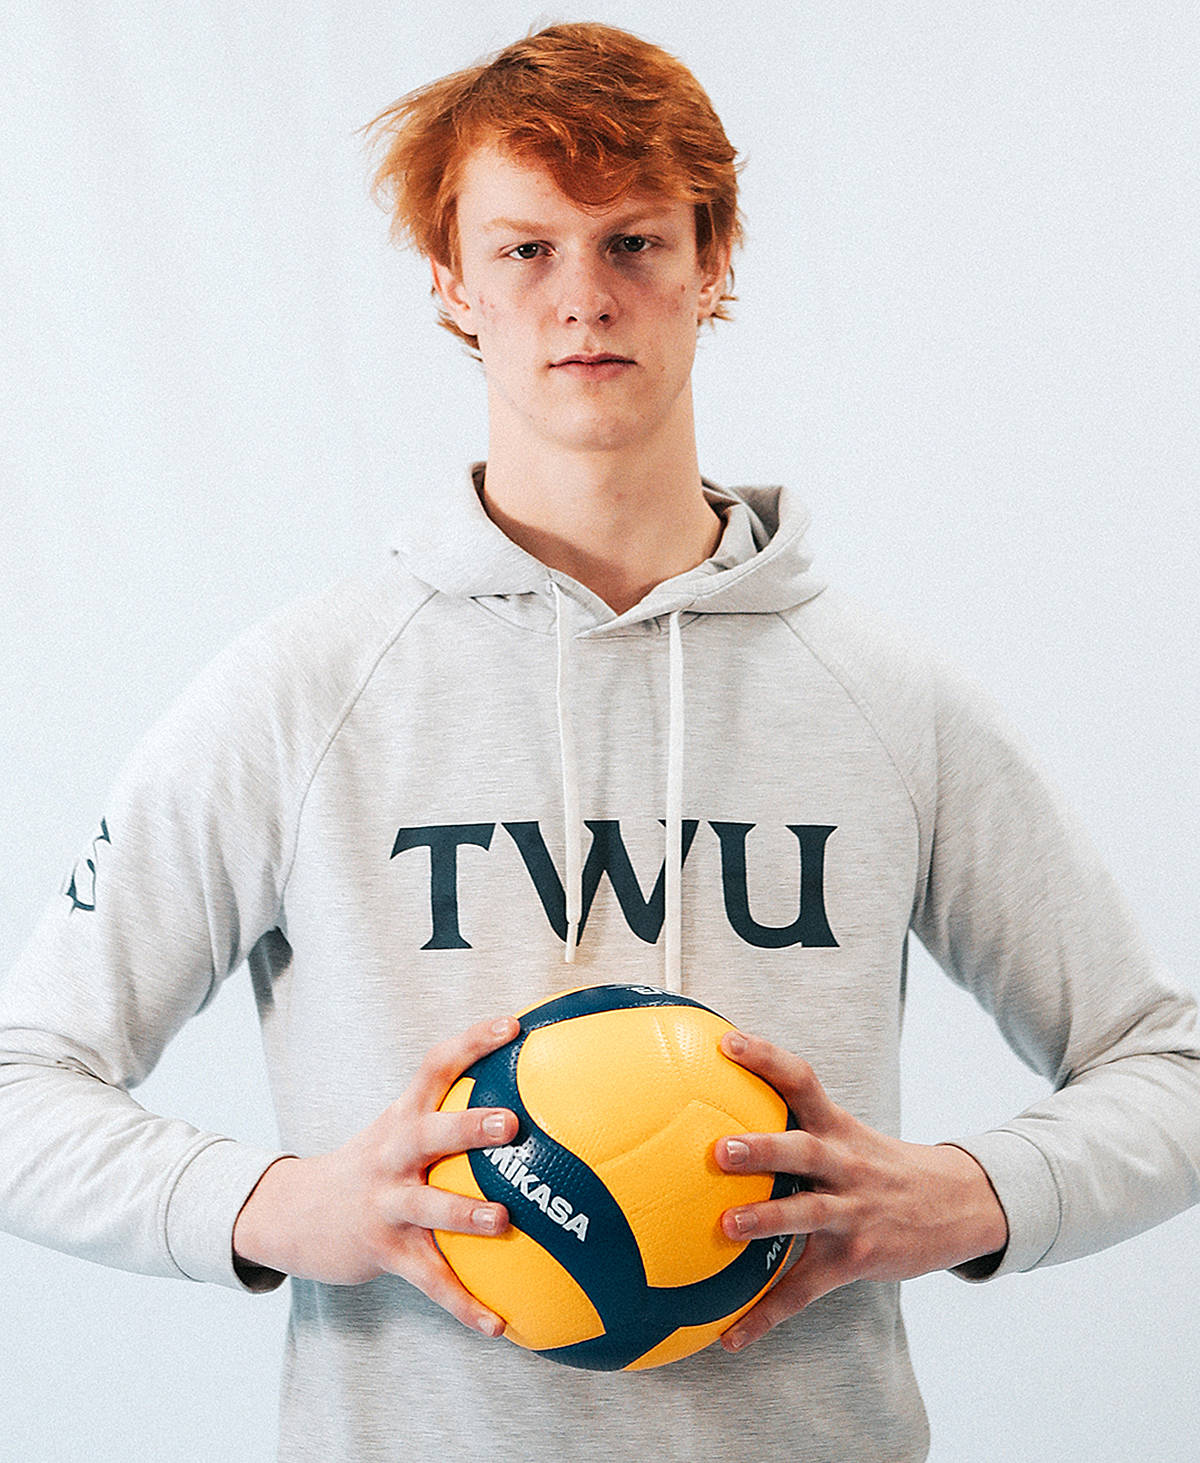 Volleyball middle Cory Schoenherr, a member of the TWU Spartans team in Langley, will once again play for Canada team. (TWU/Special to Langley Advance Times)